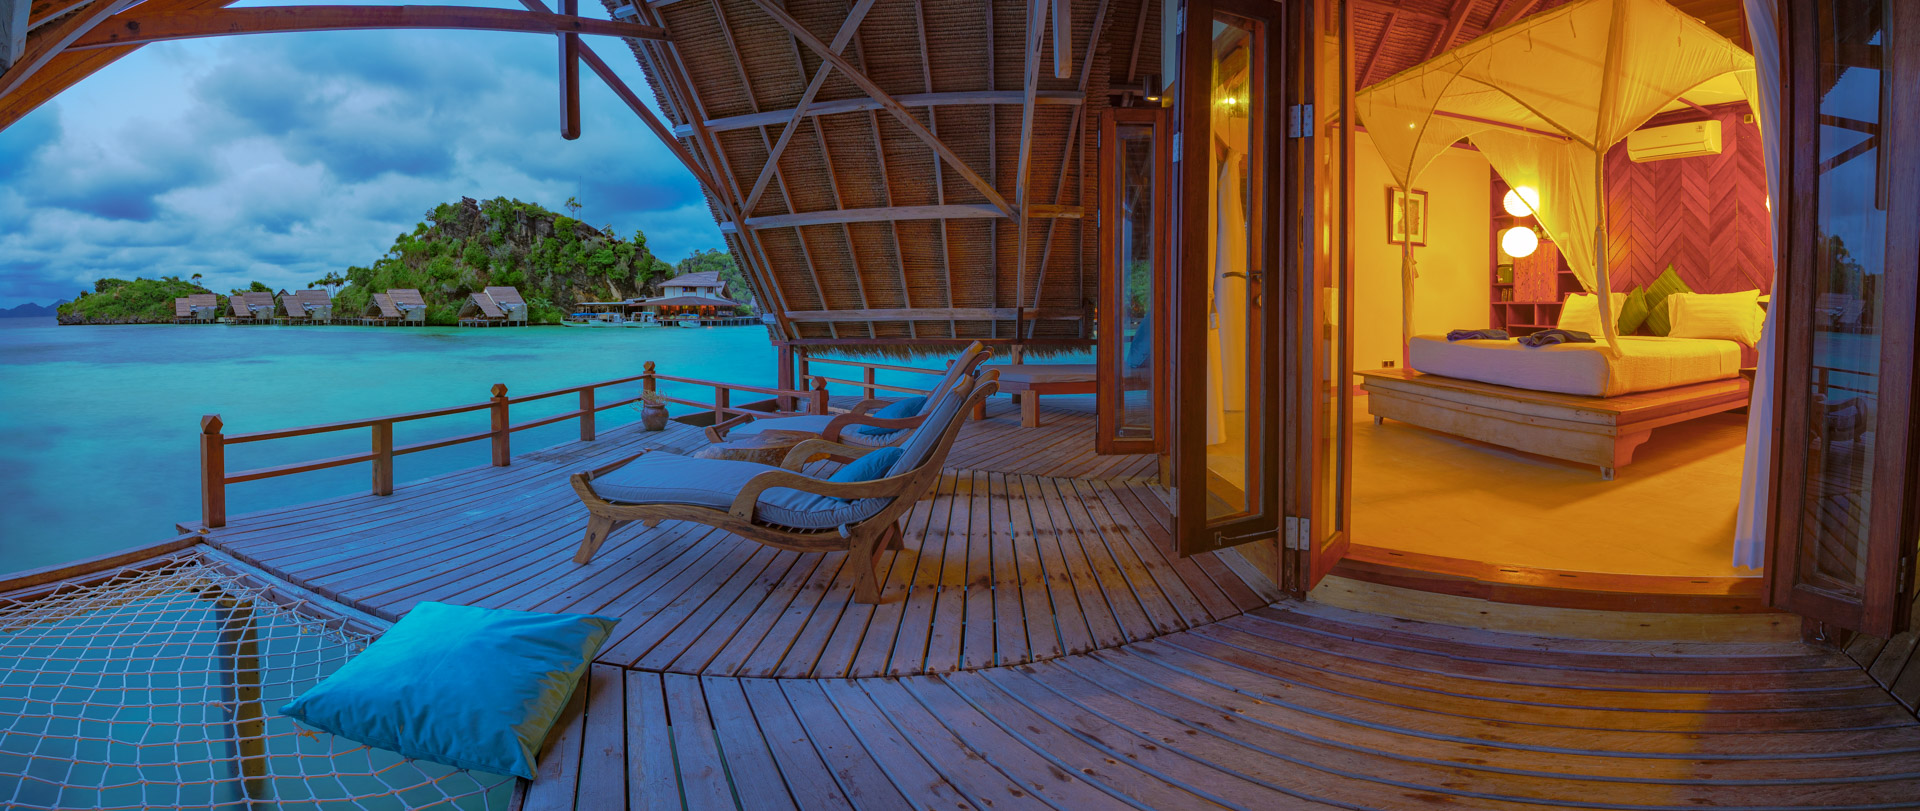 panorama of misool resort's rooms and balcony